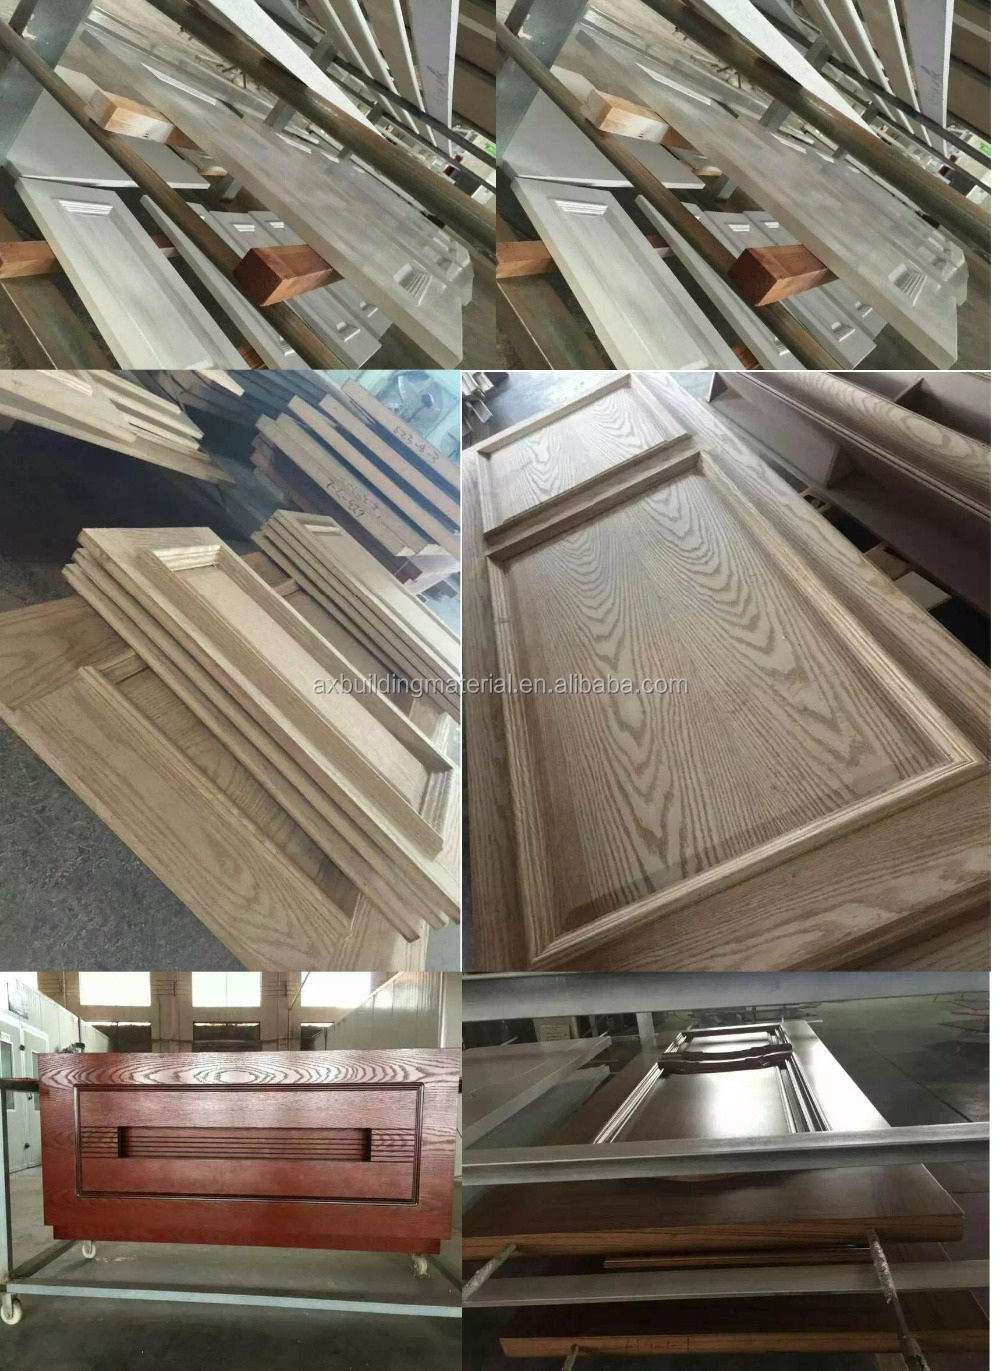 European Style 100% Real Wood Door from China